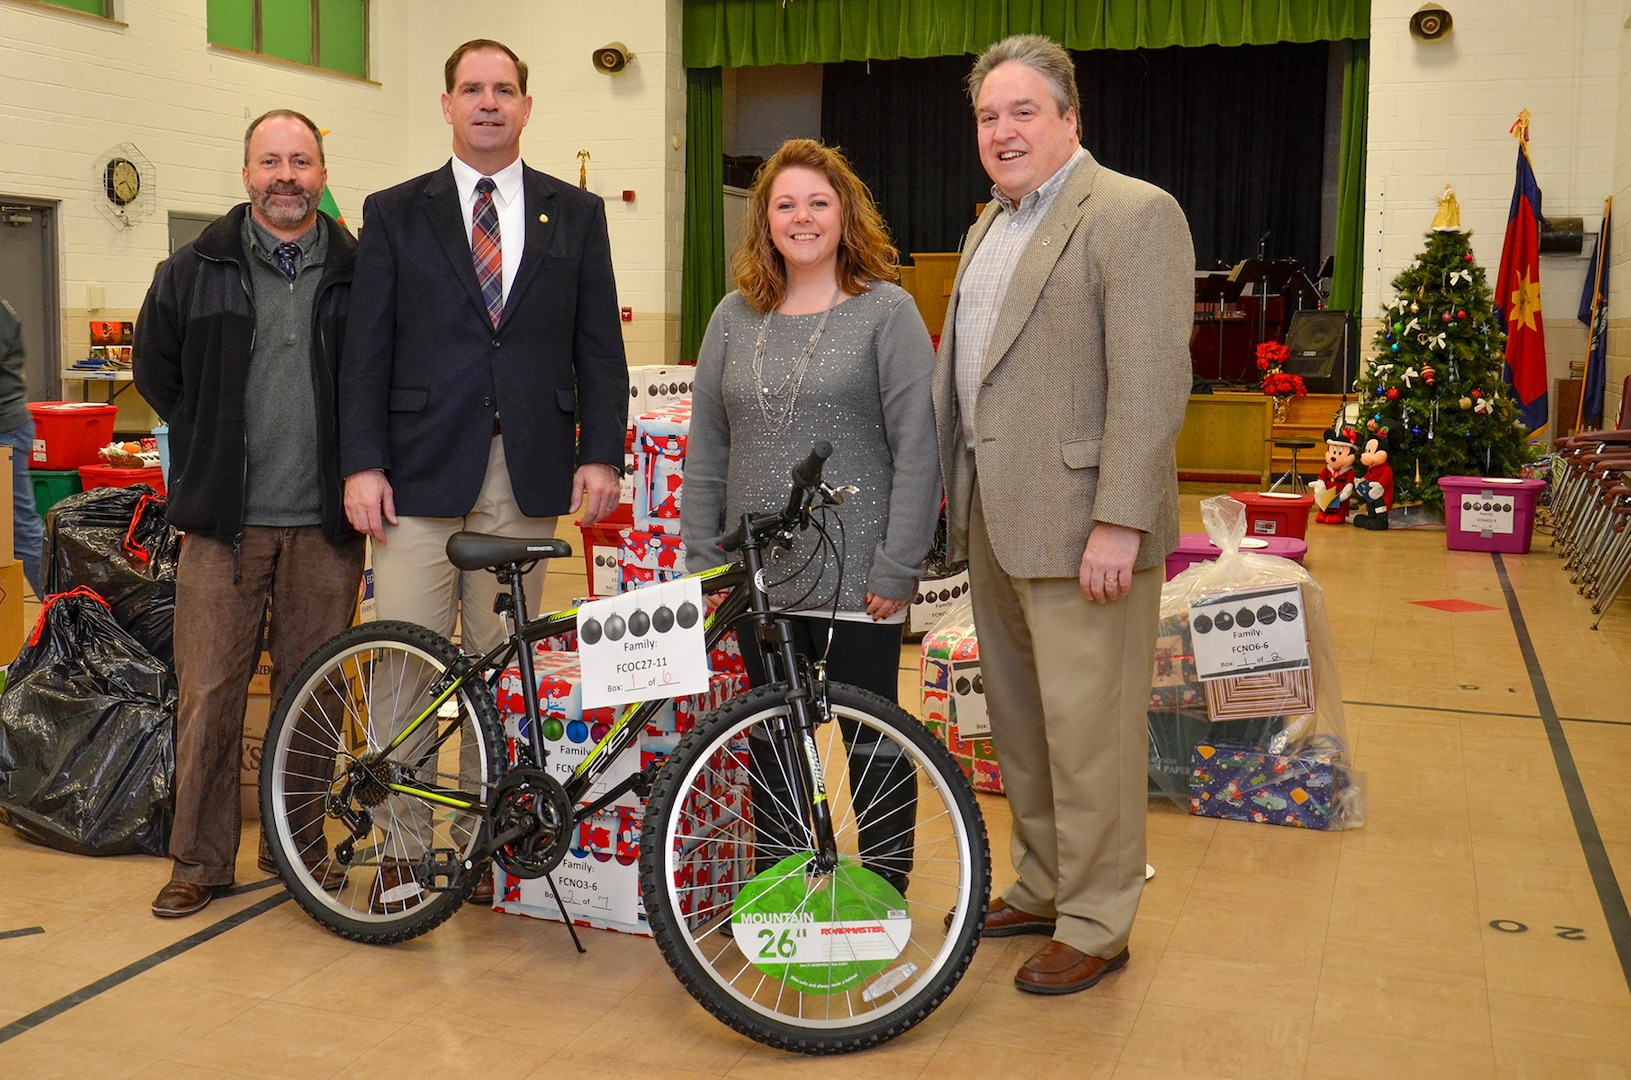 Don Phillips (left), DLA Installation Support at Battle Creek's acting site director, and DLA Disposition Services Director Mike Cannon (left center) and Logistics Information Services Director Ray Zingaretti join Tiffany Schmidt, a DLA marketing specialist and the DLA coordinator for the Adopt a Family campaign, as agency employees help the Salvation Army distribute the food and items collected.